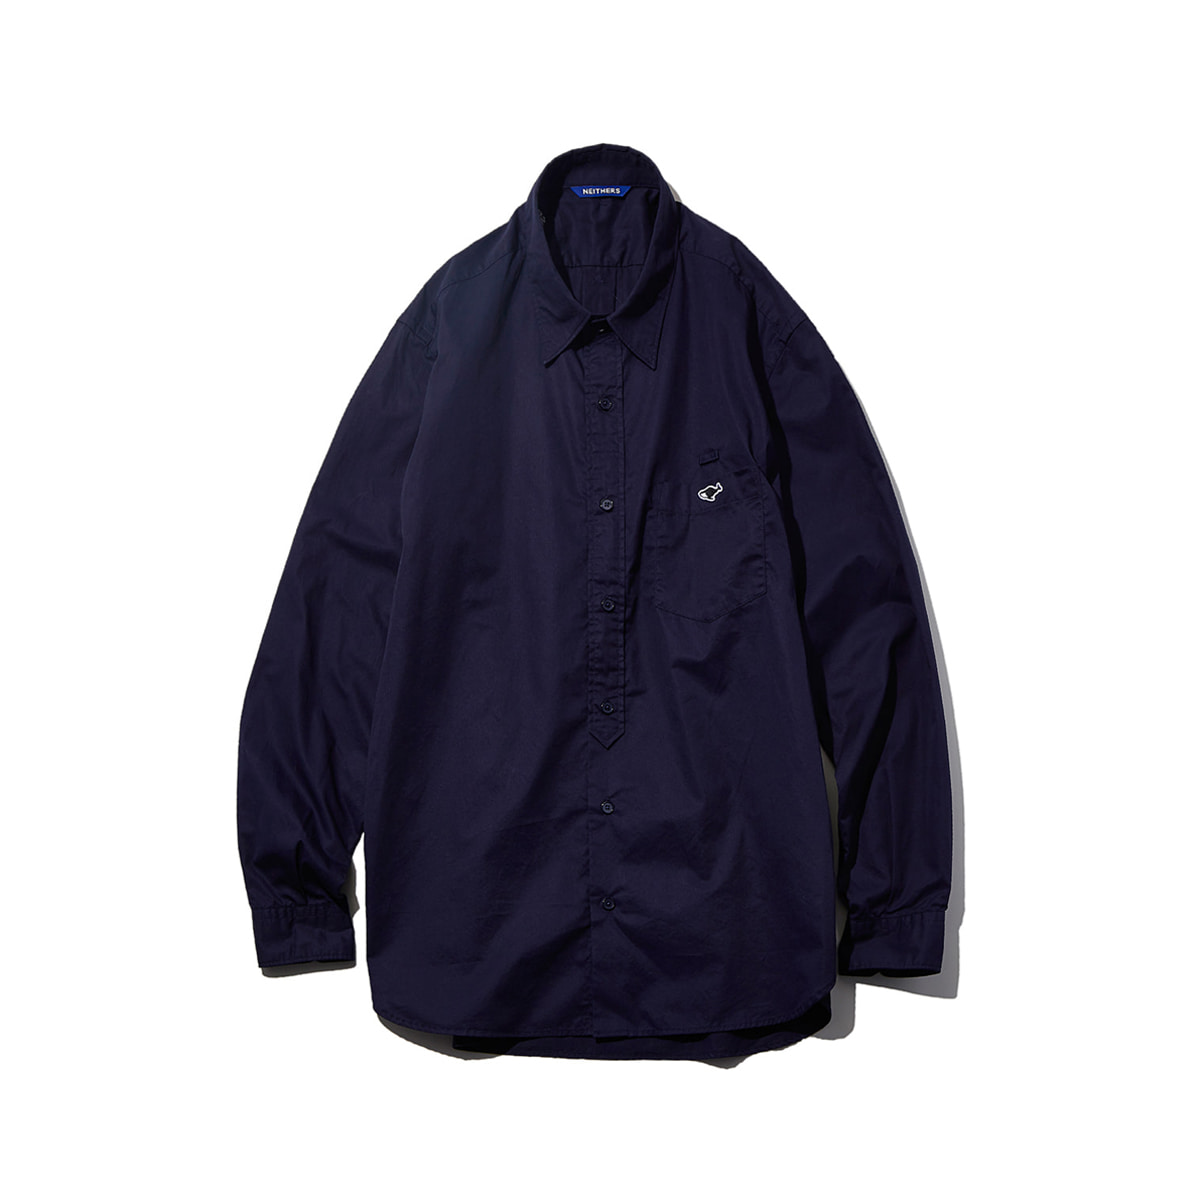 [NEITHERS] 209B-3 COMFORT SHIRT 'NAVY'